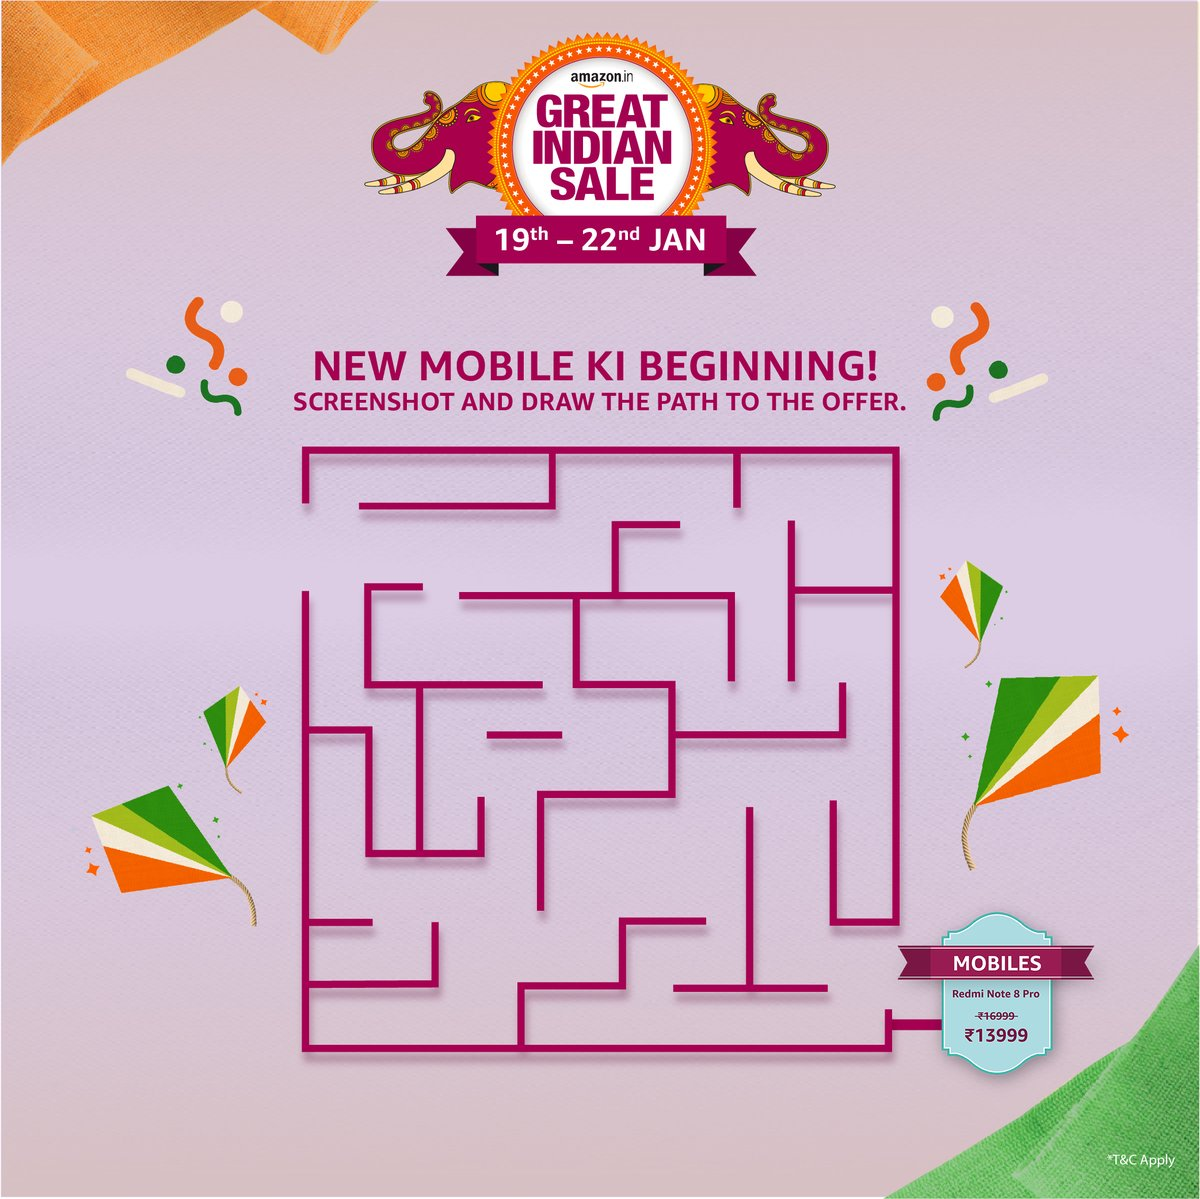 Hello! Your new phone is calling you. Screenshot this image and finish the maze. Tweet with your screenshot, tag @amazonIN  using #AmazonGreatIndianSale #MazingAmazon. Get a chance to win exciting vouchers worth ₹1000 T&C: http://bit.ly/3anBvWN